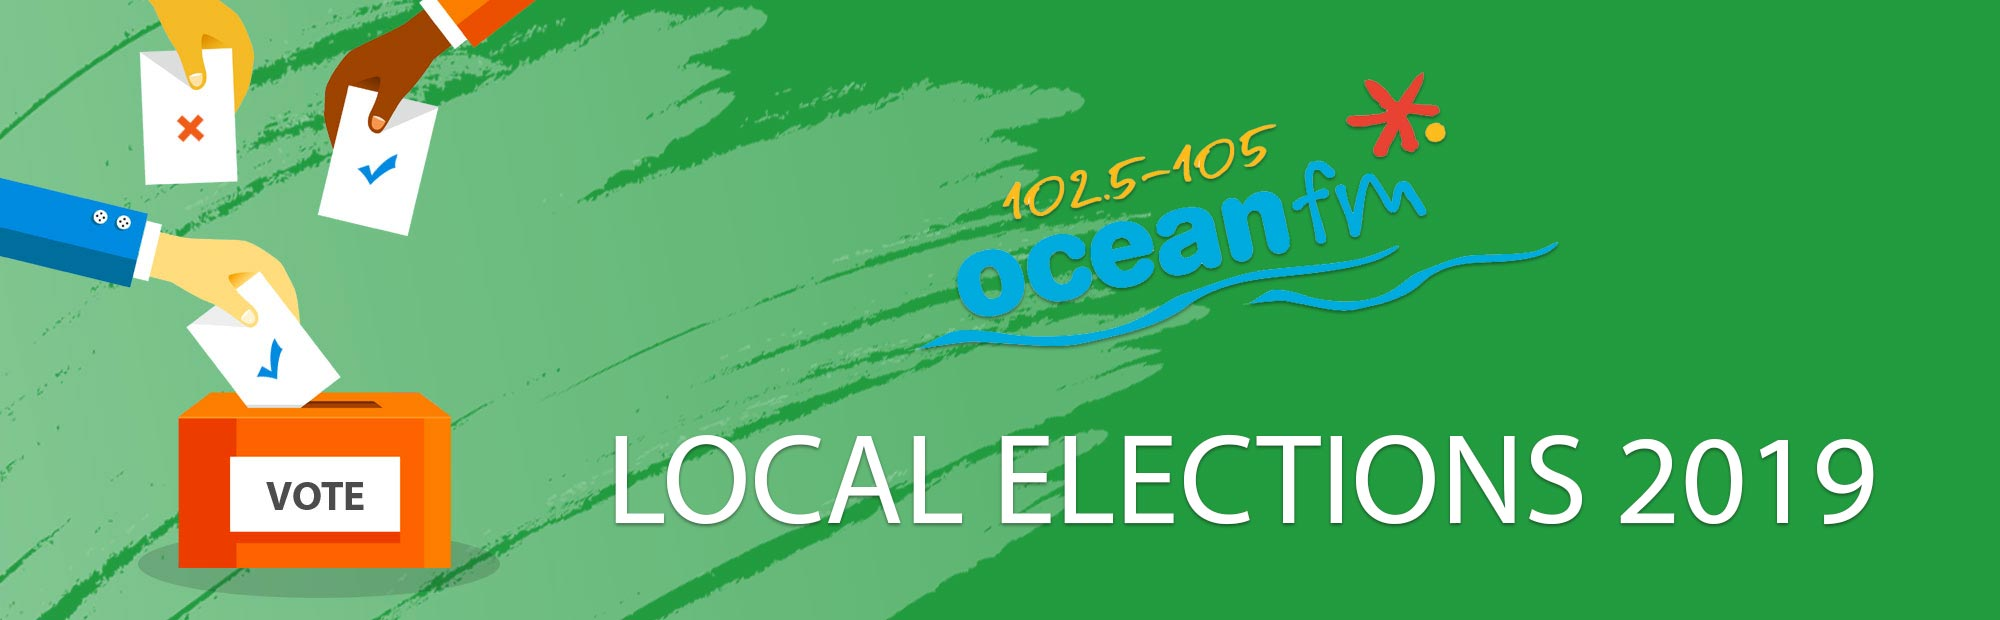 Local Elections 2019